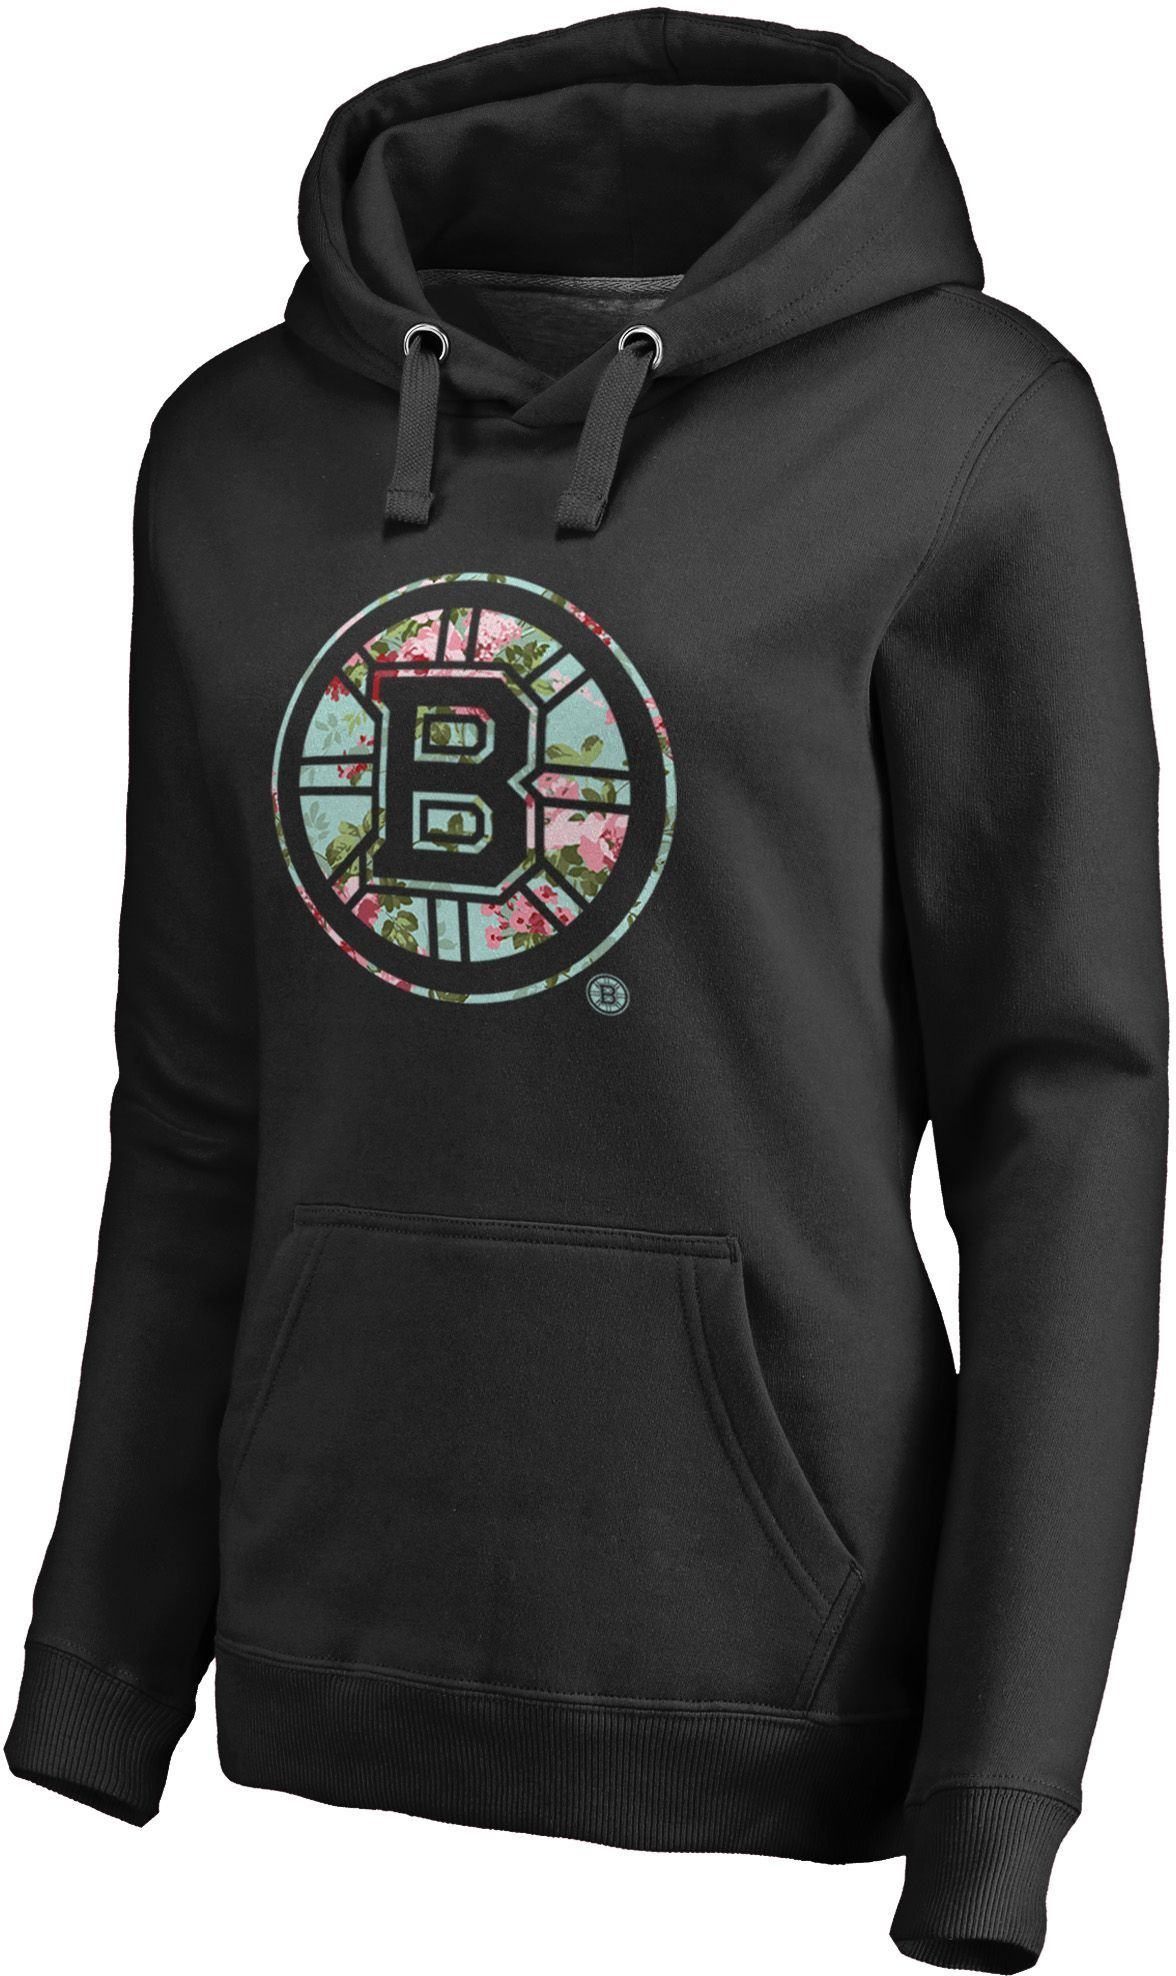 63a85d9c NHL Women's Boston Bruins Lovely Black Pullover Hoodie in 2019 ...